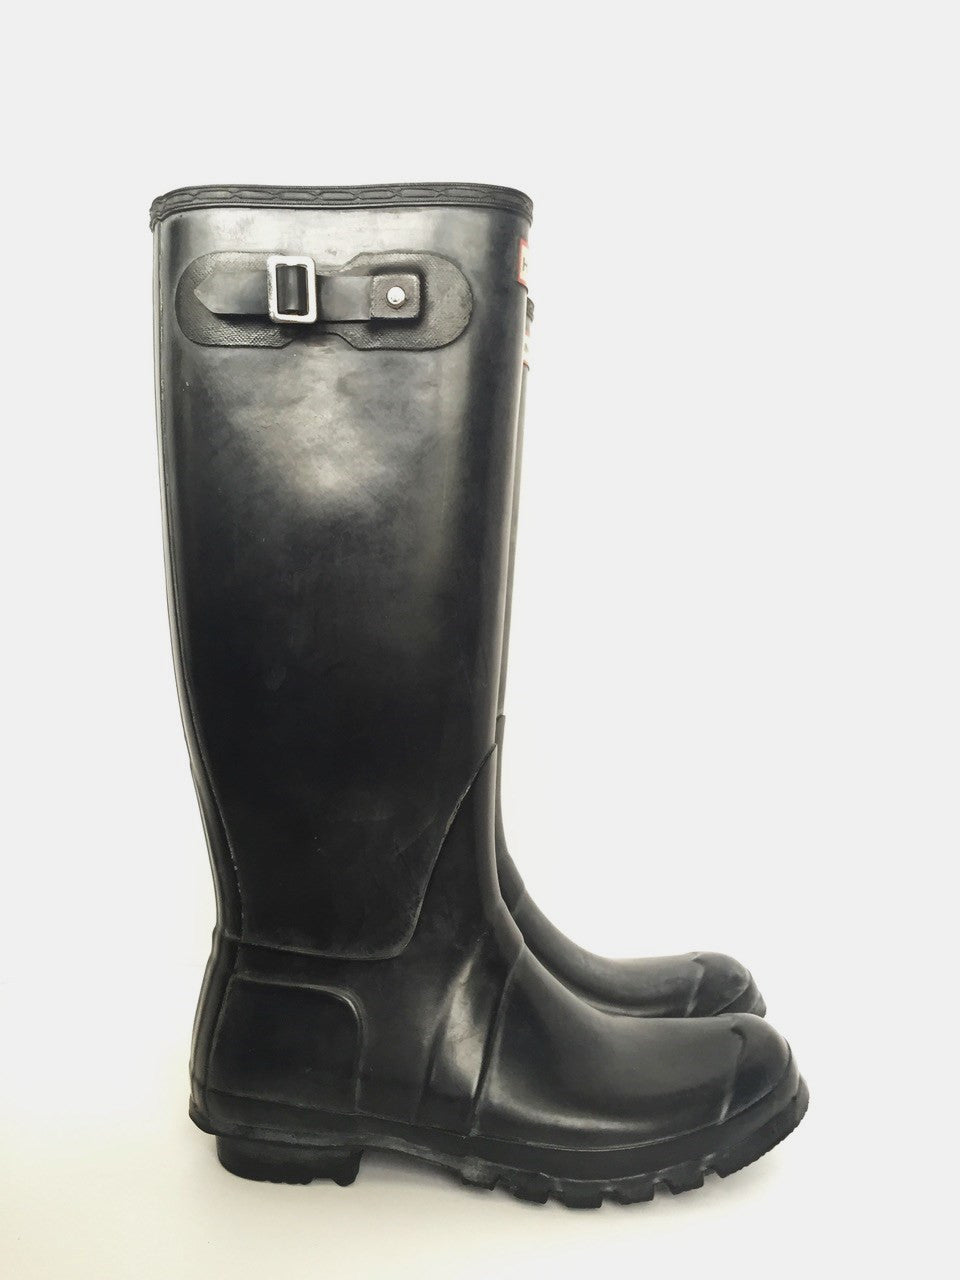 Hunter Black Tall Rubber Rain Boots Size 10